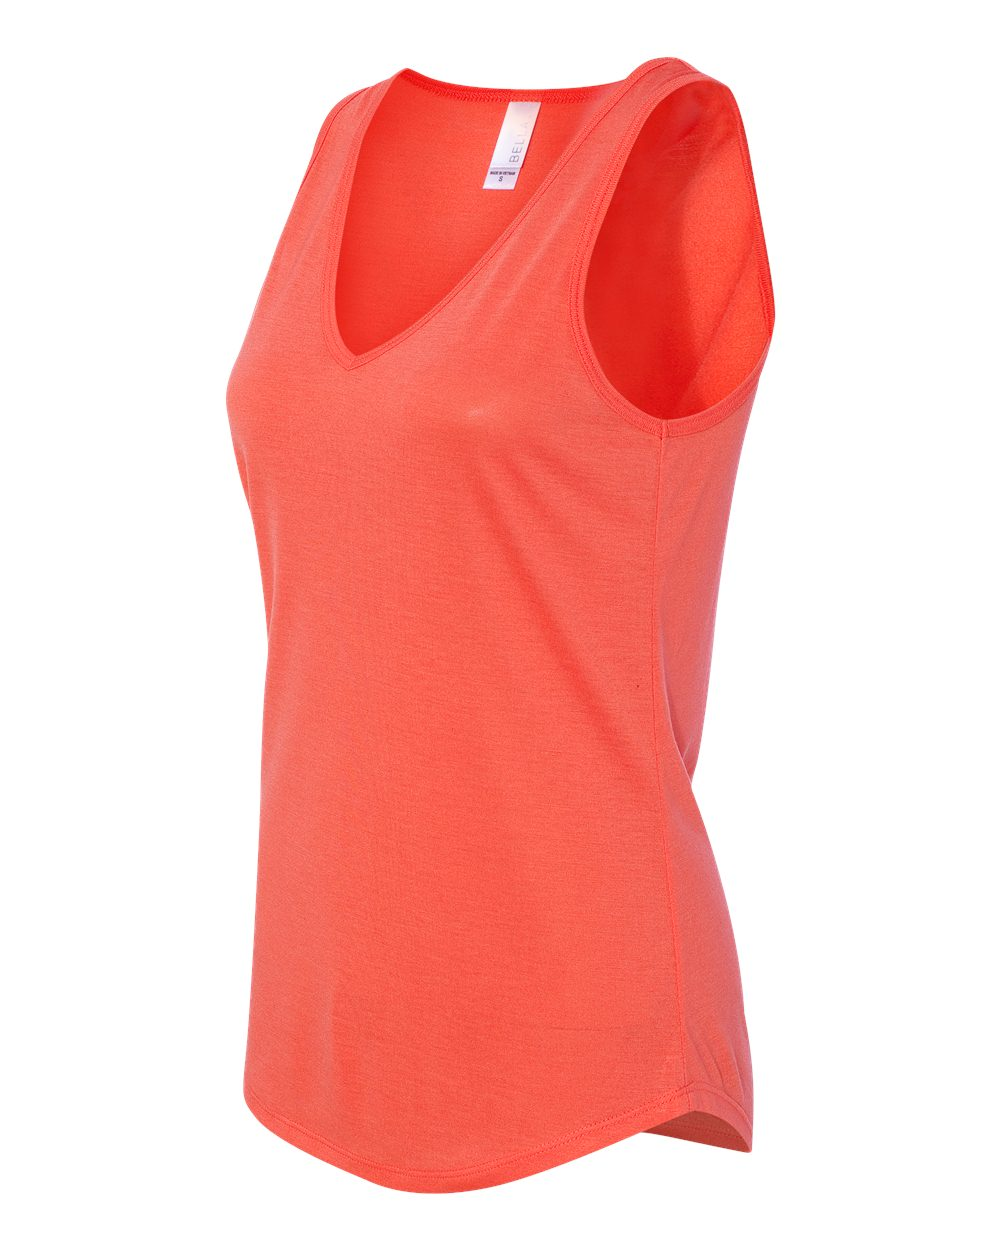 Bella-Canvas-Women-039-s-Flowy-V-Neck-Tank-B8805-S-2XL thumbnail 24